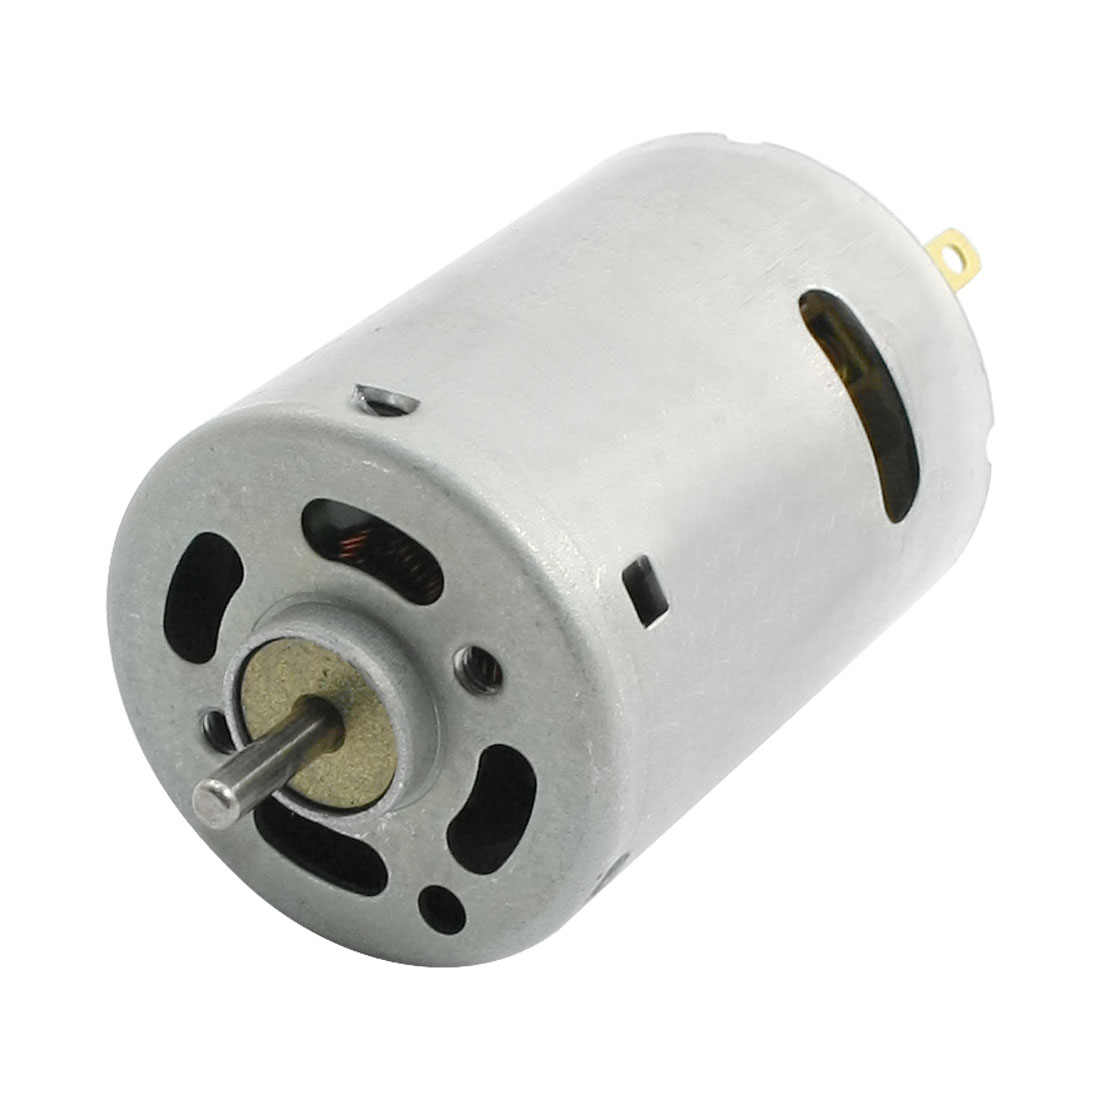 2mm-Shaft-16000R-Min-High-Speed-Micro-Vibrating-Vibration-Motor-DC-3-9V